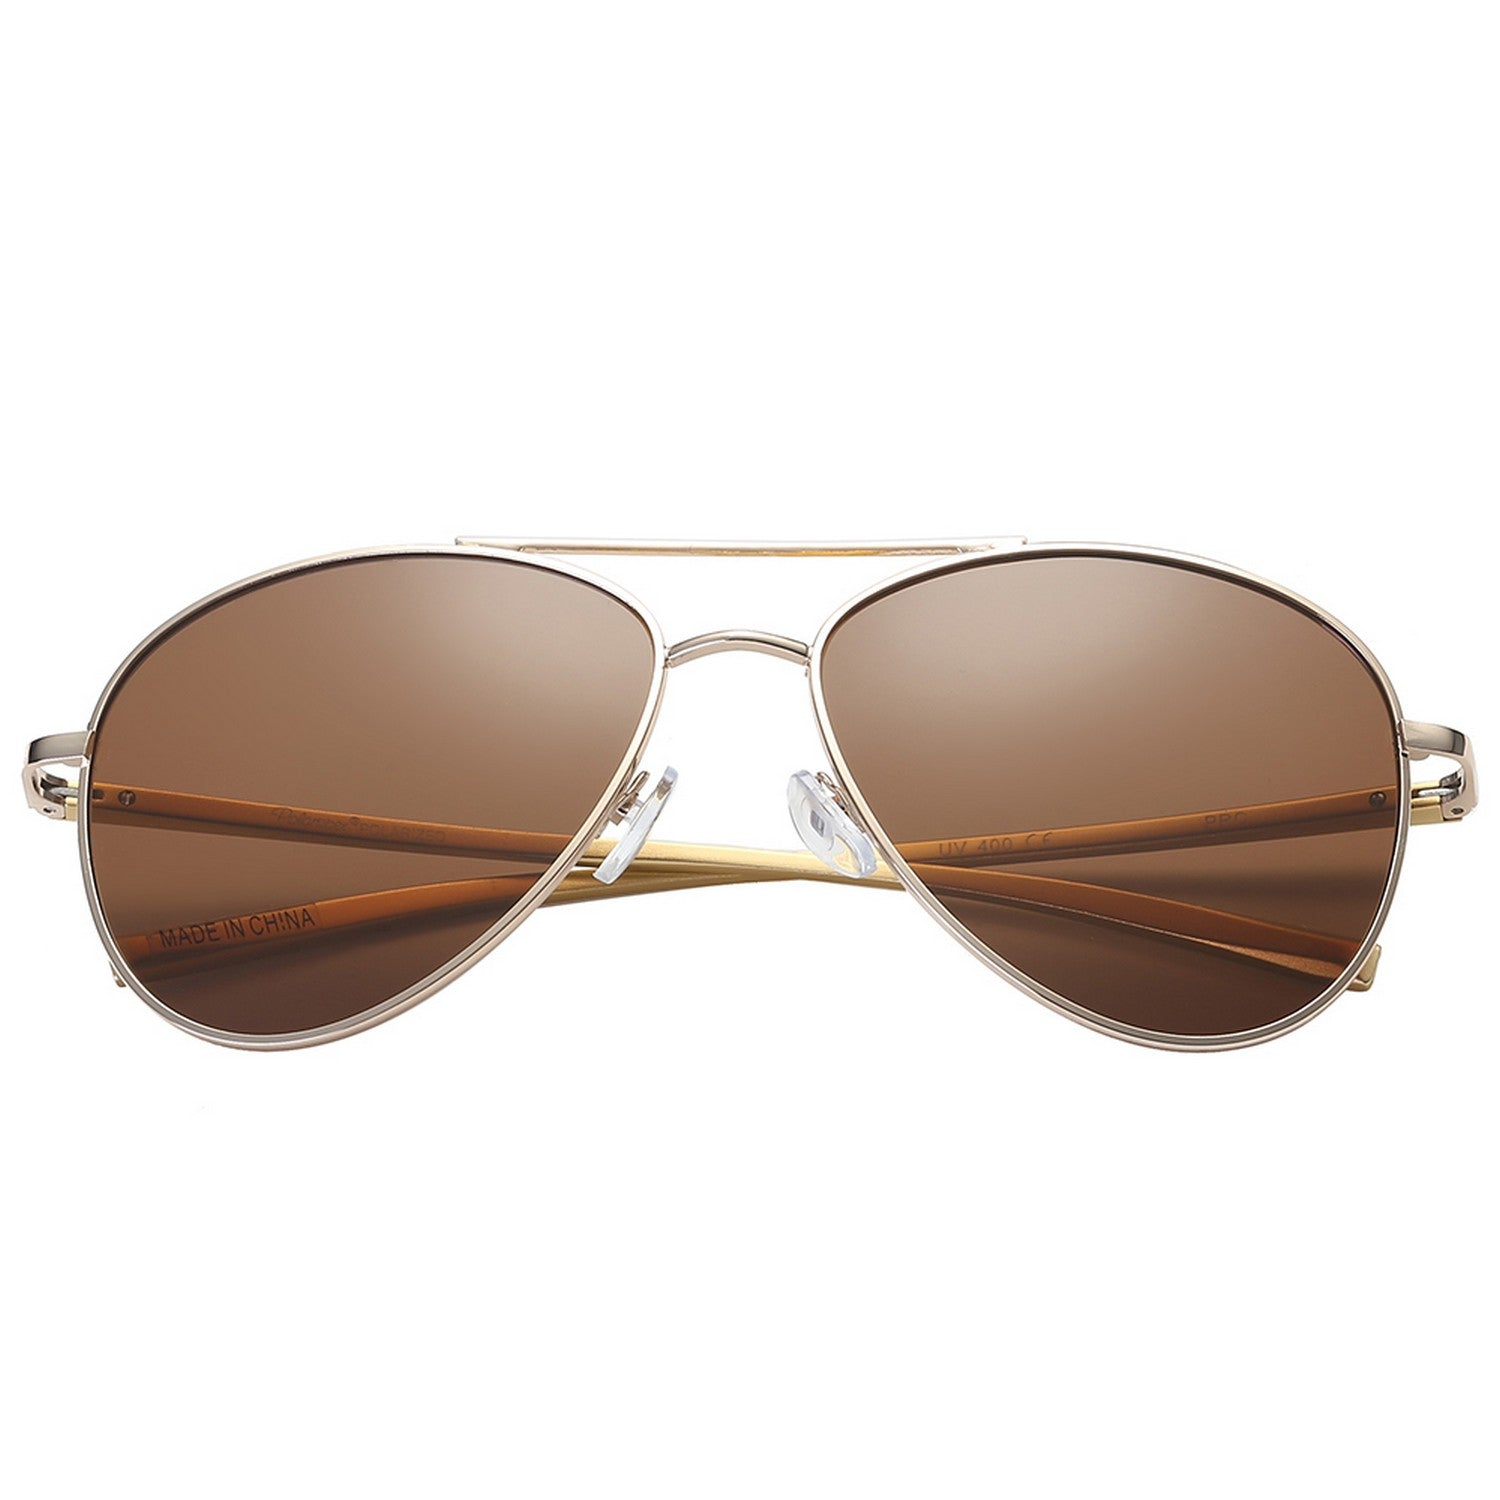 Polarspex Polarized Aviator Style Sunglasses with Aluminum Gold Frames and Polarized Brown Lenses for Men and Women